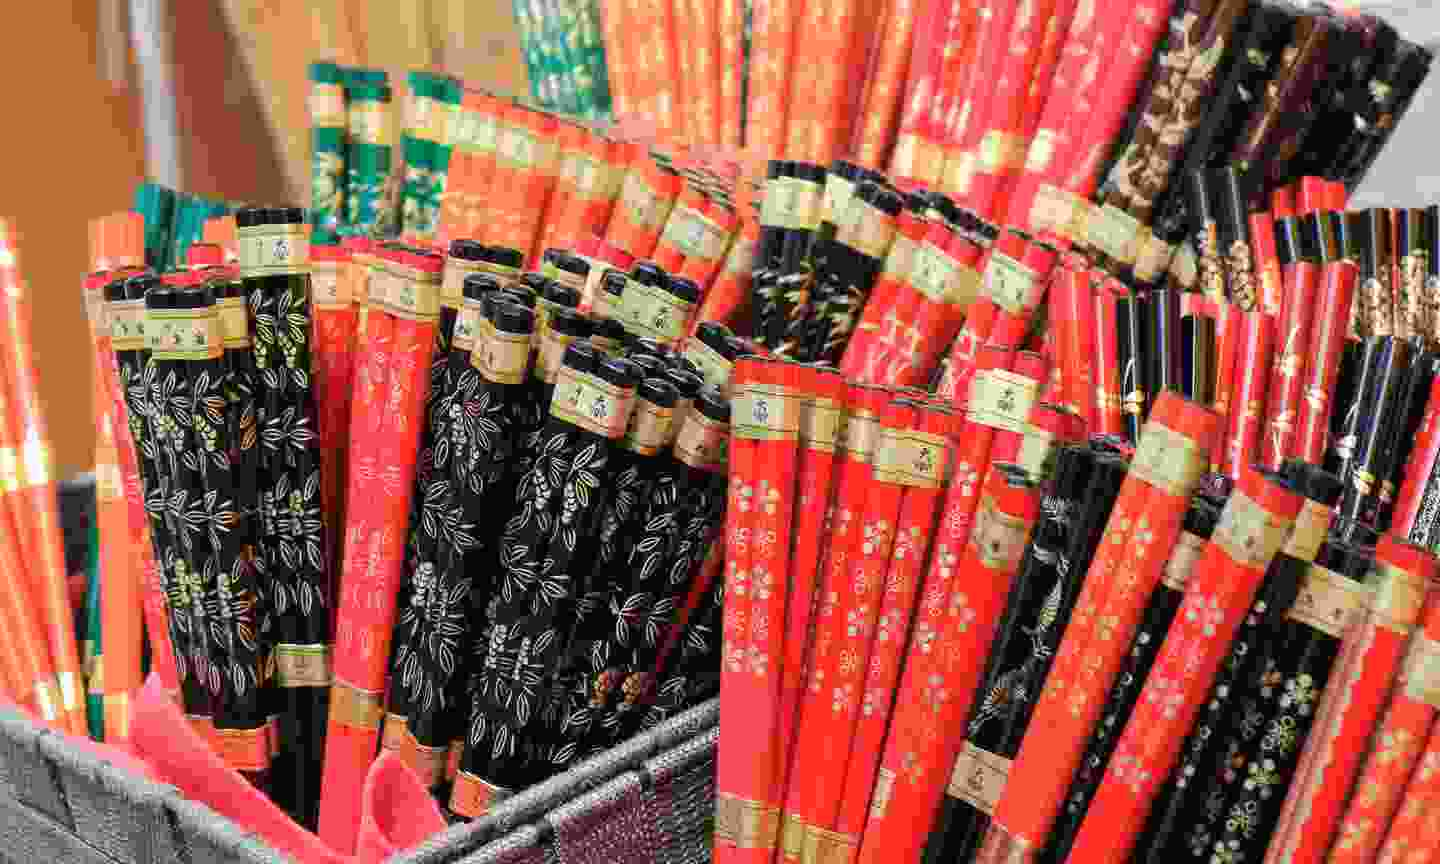 Chopsticks on display in Japan (Dreamstime)